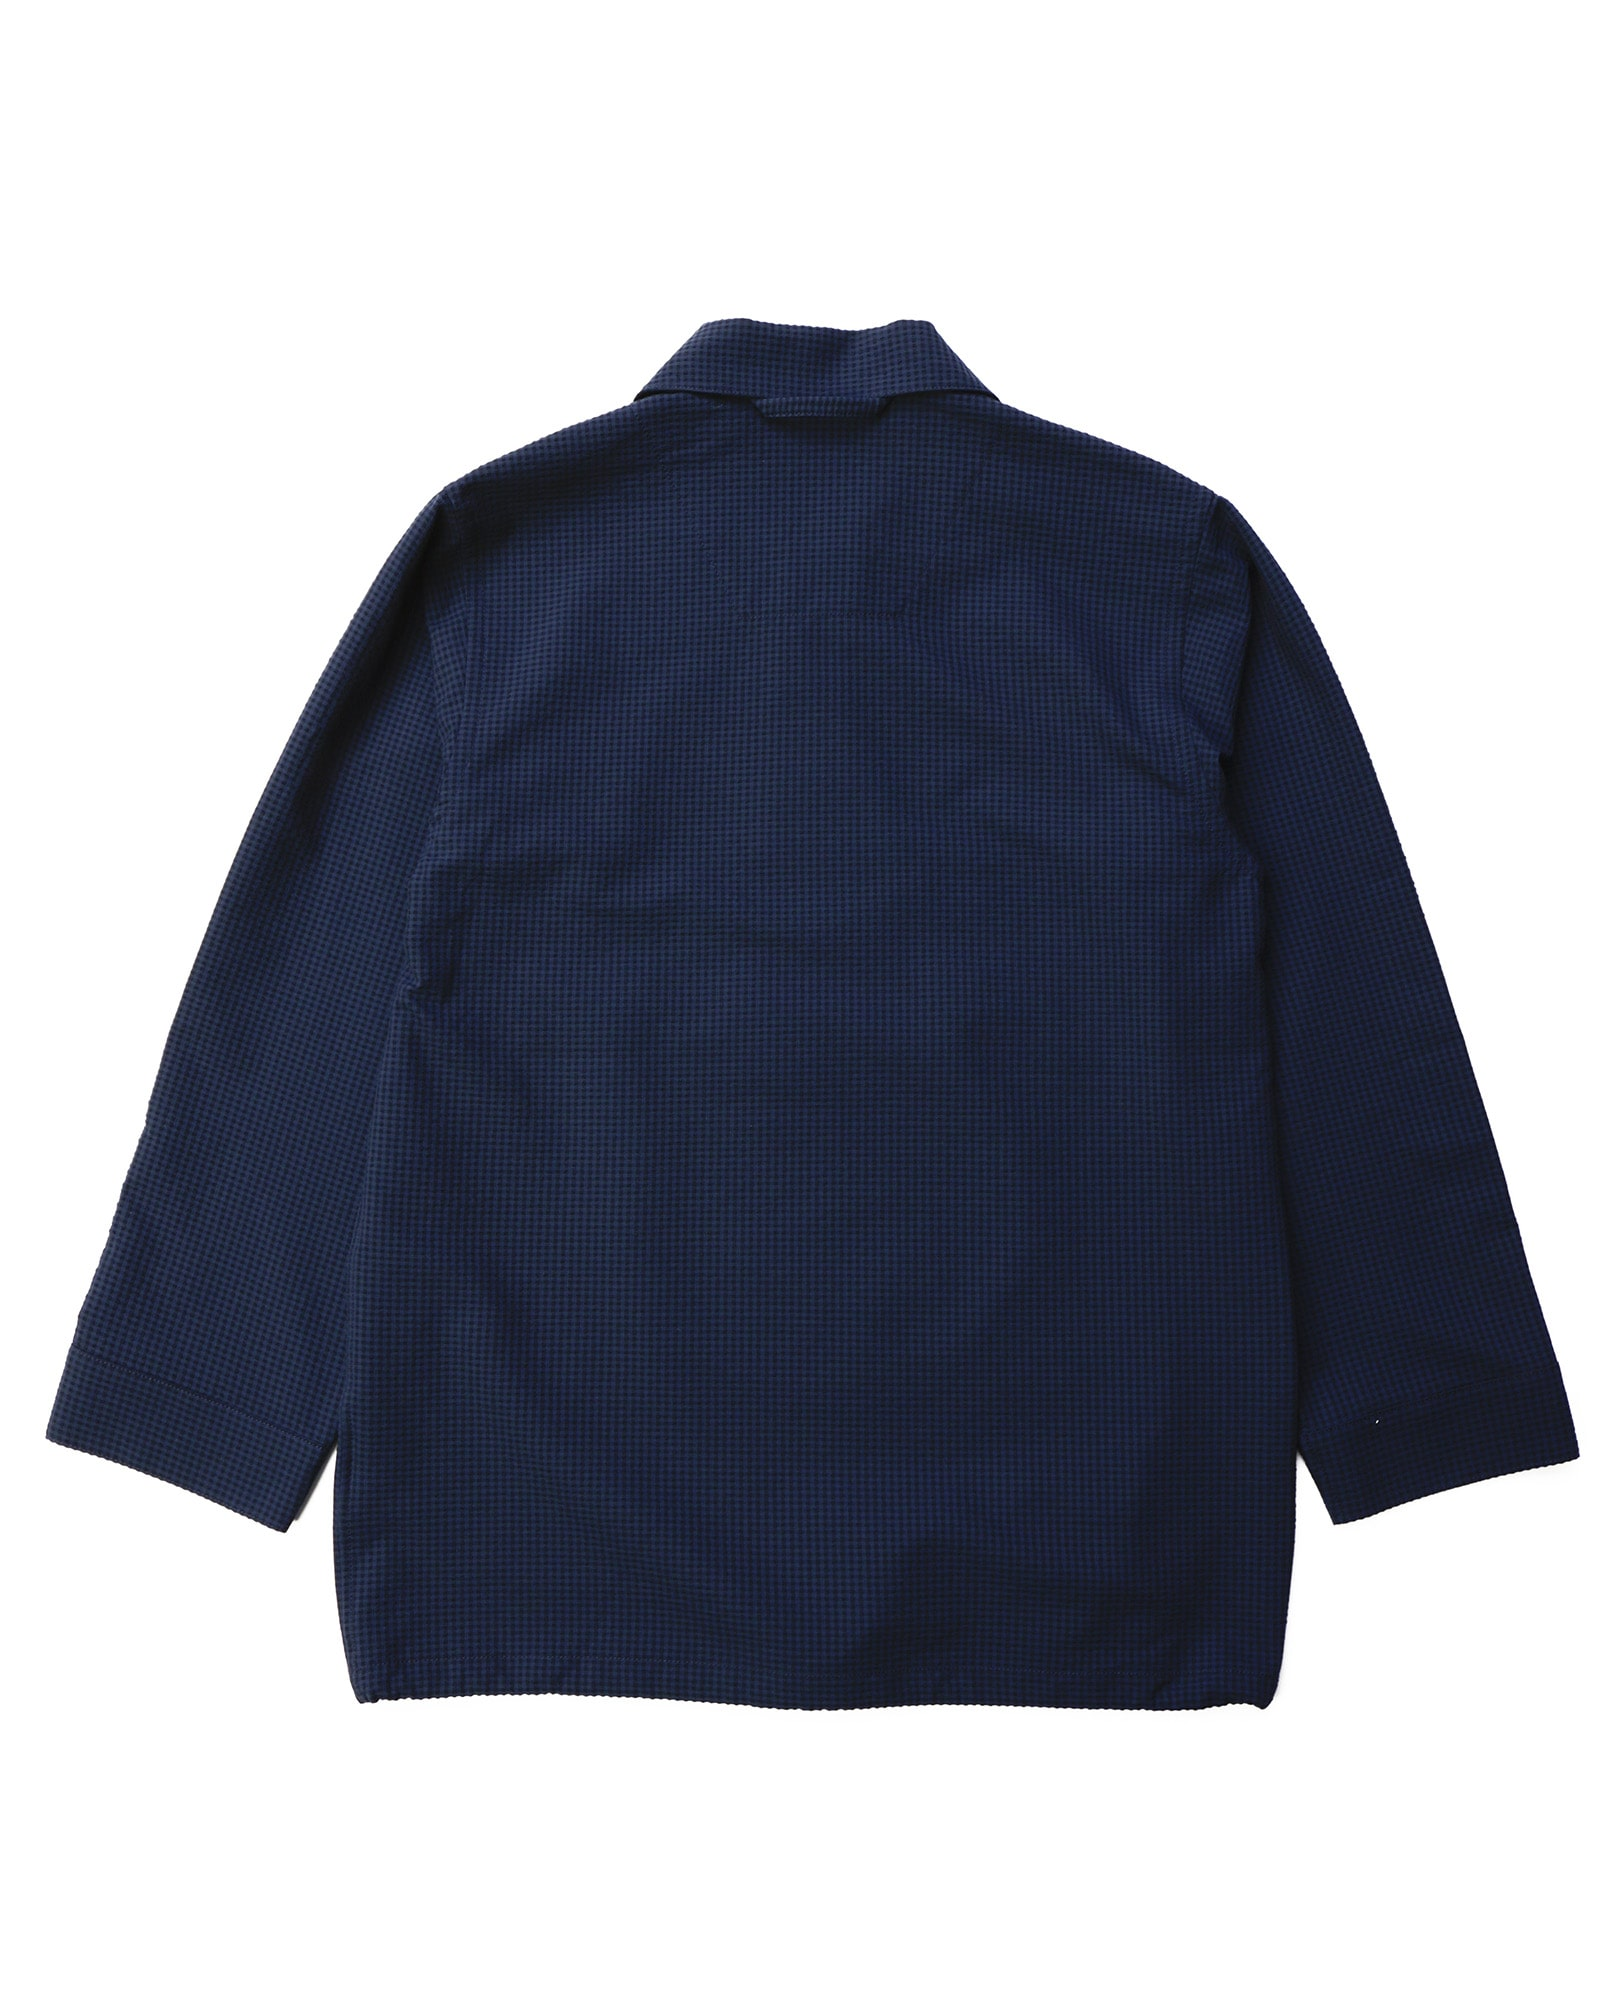 PRIMEFLEX SLEEPING SHIRT